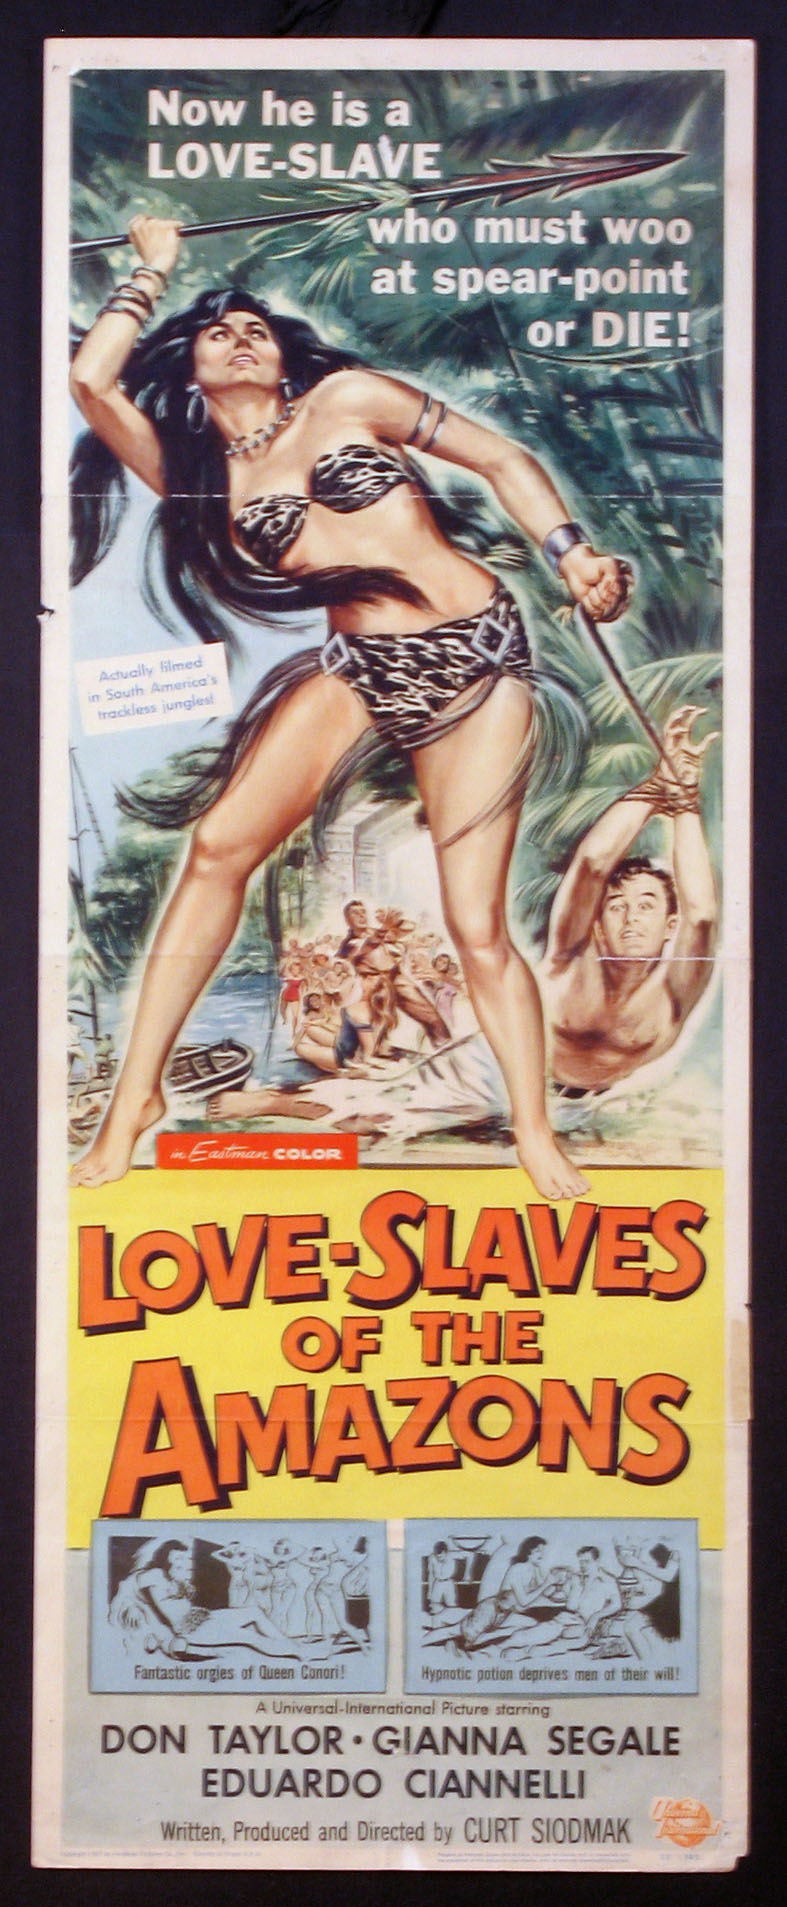 LOVE-SLAVES OF THE AMAZONS (Love Slaves of the Amazons) @ FilmPosters.com